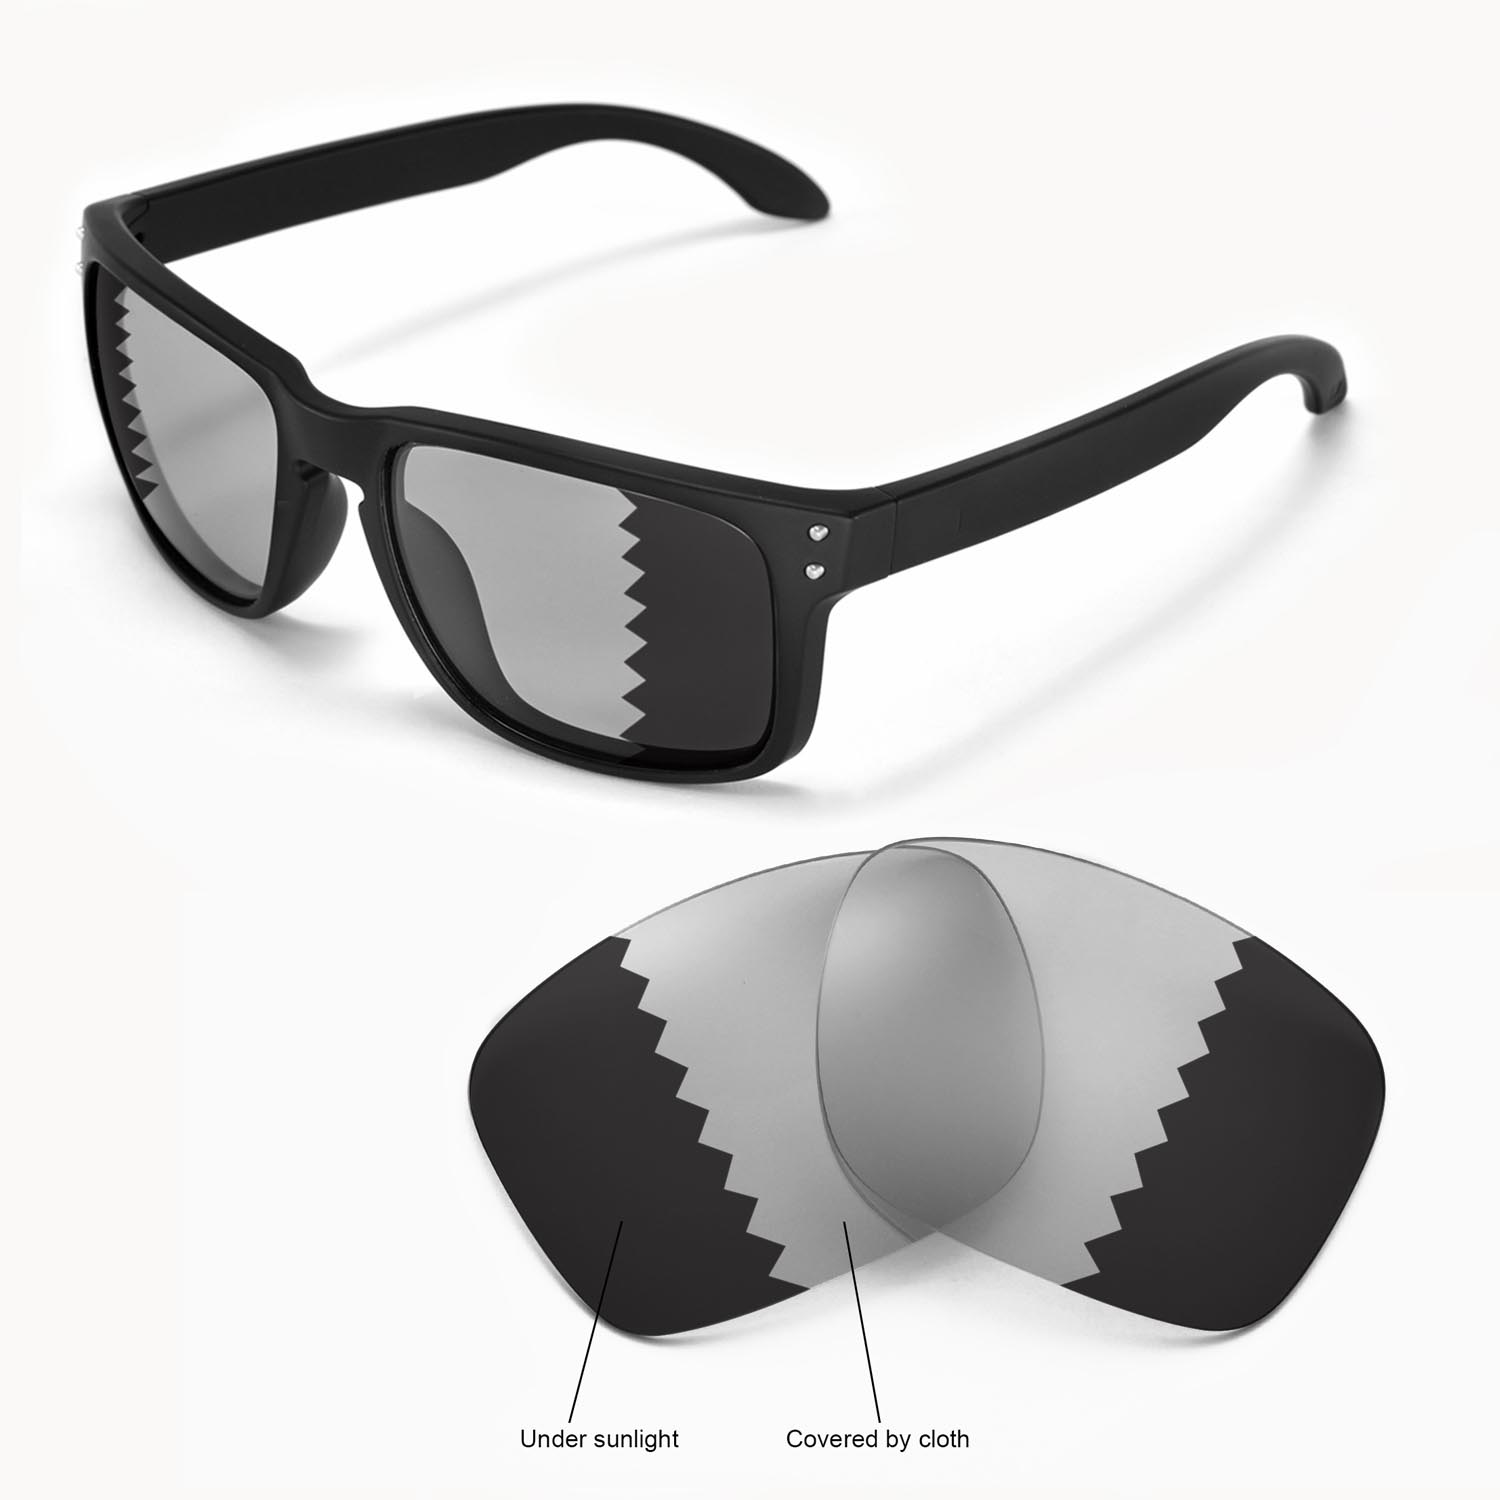 5f8476f3afb3e Details about New Walleva Polarized Transition Photochromic Lenses For  Oakley Holbrook